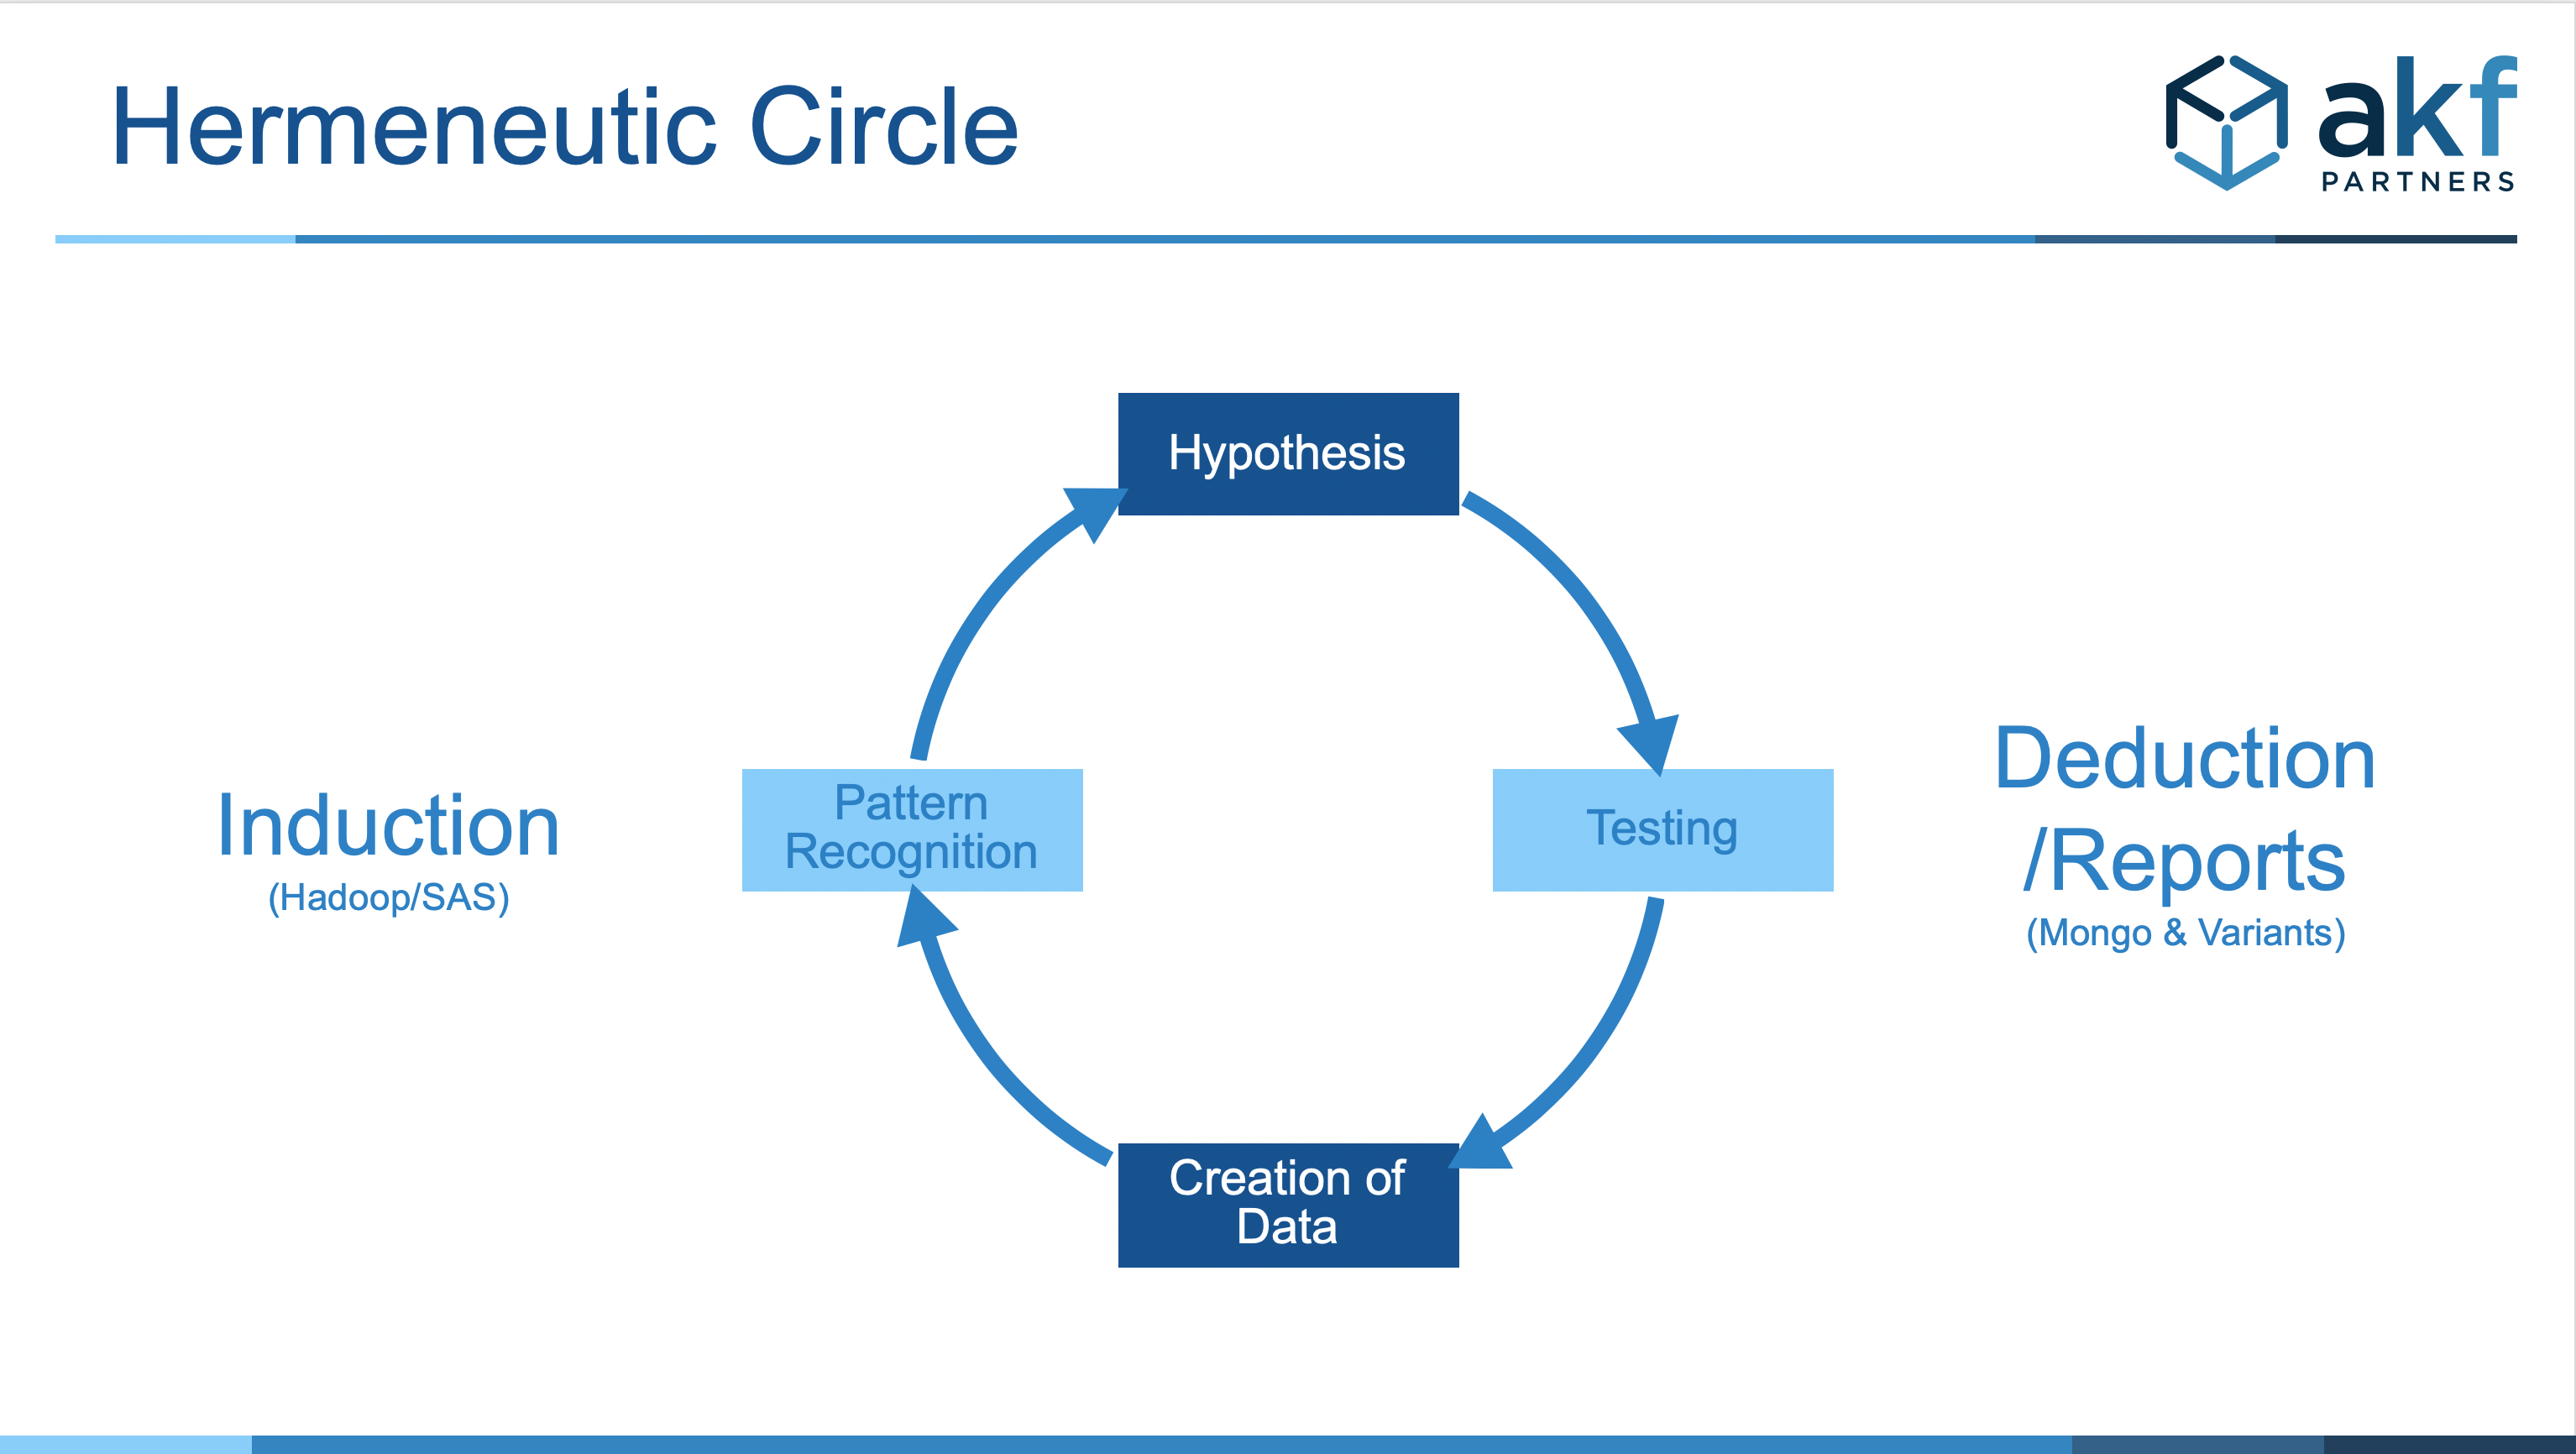 Diagram of Hermeneutic Circle